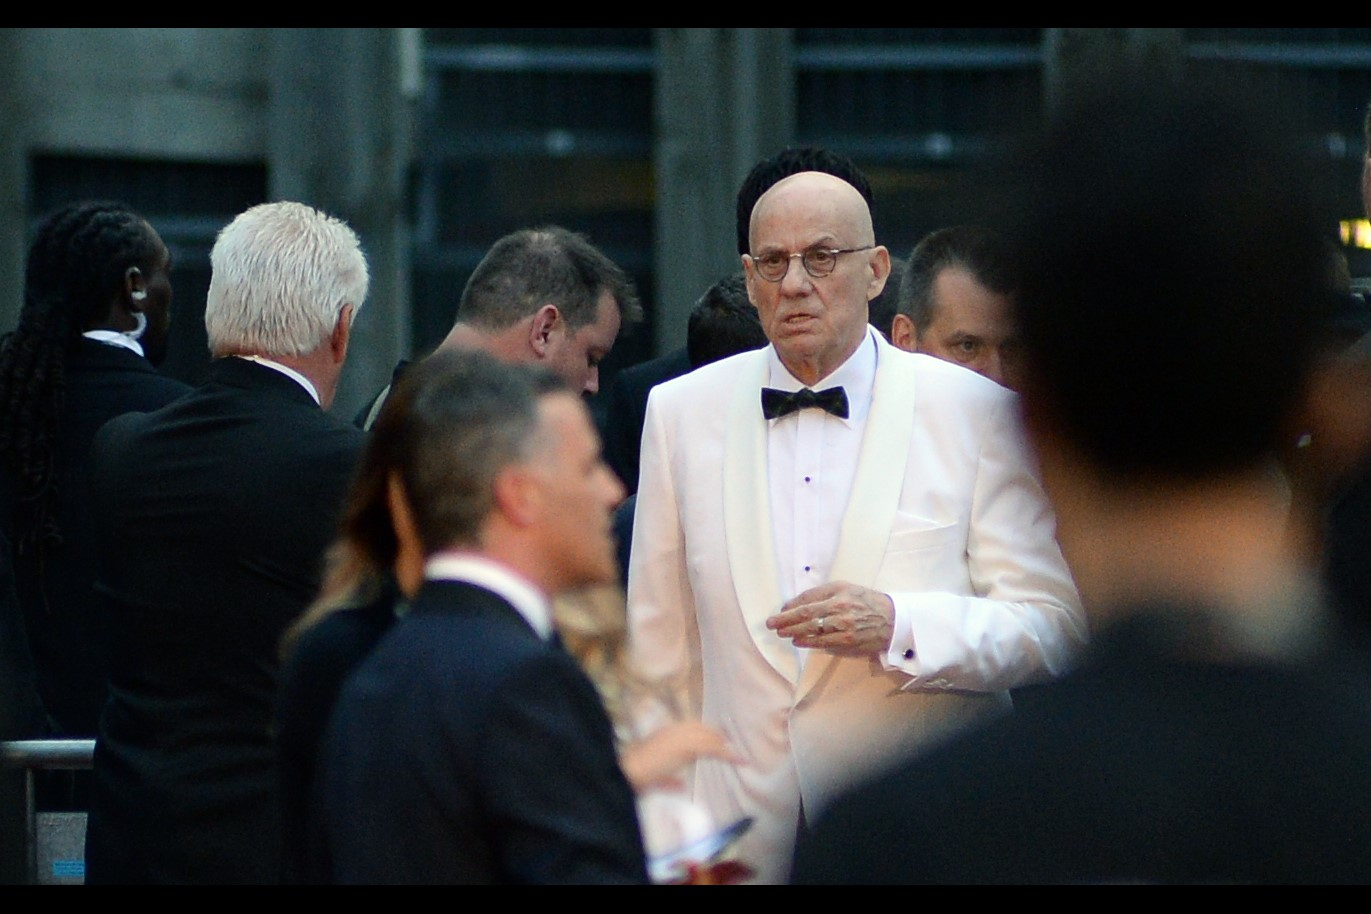 """My kingdom for a white bowtie… anyone? ANYONE??""  Writer James Ellroy won the ""Writer of the Year"" award… and indeed he has written a book this year (I always make sure to check, as the GQs are kinda notorious for awards given to Cool People On Pretext We'll Figure Out Later)"